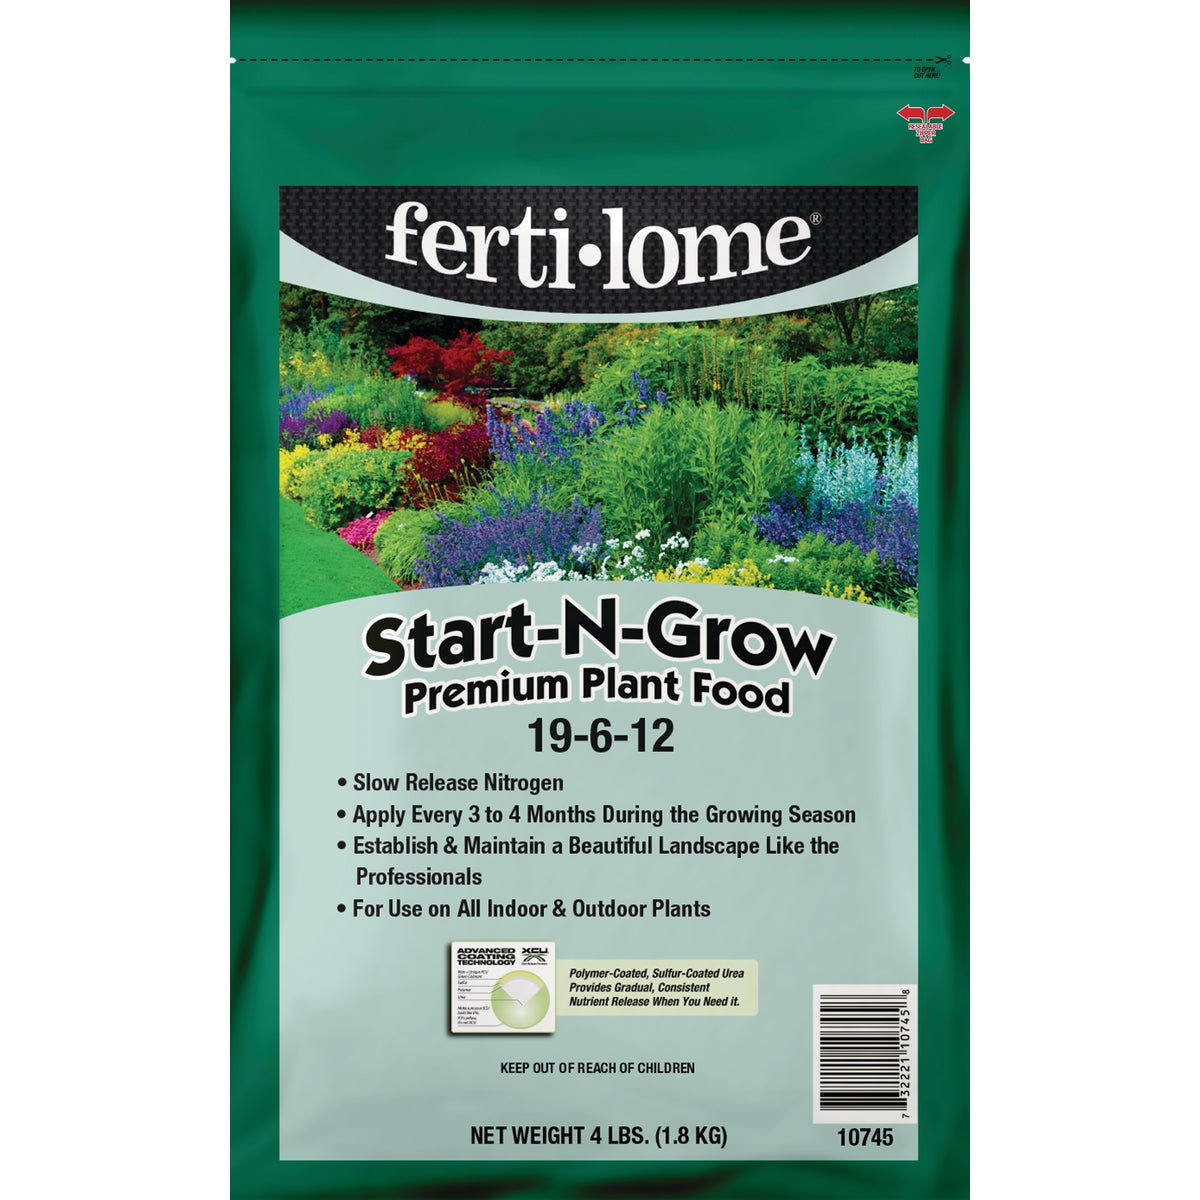 4LB PREMIUM PLANT FOOD - 10745 by Vpg Fertilome